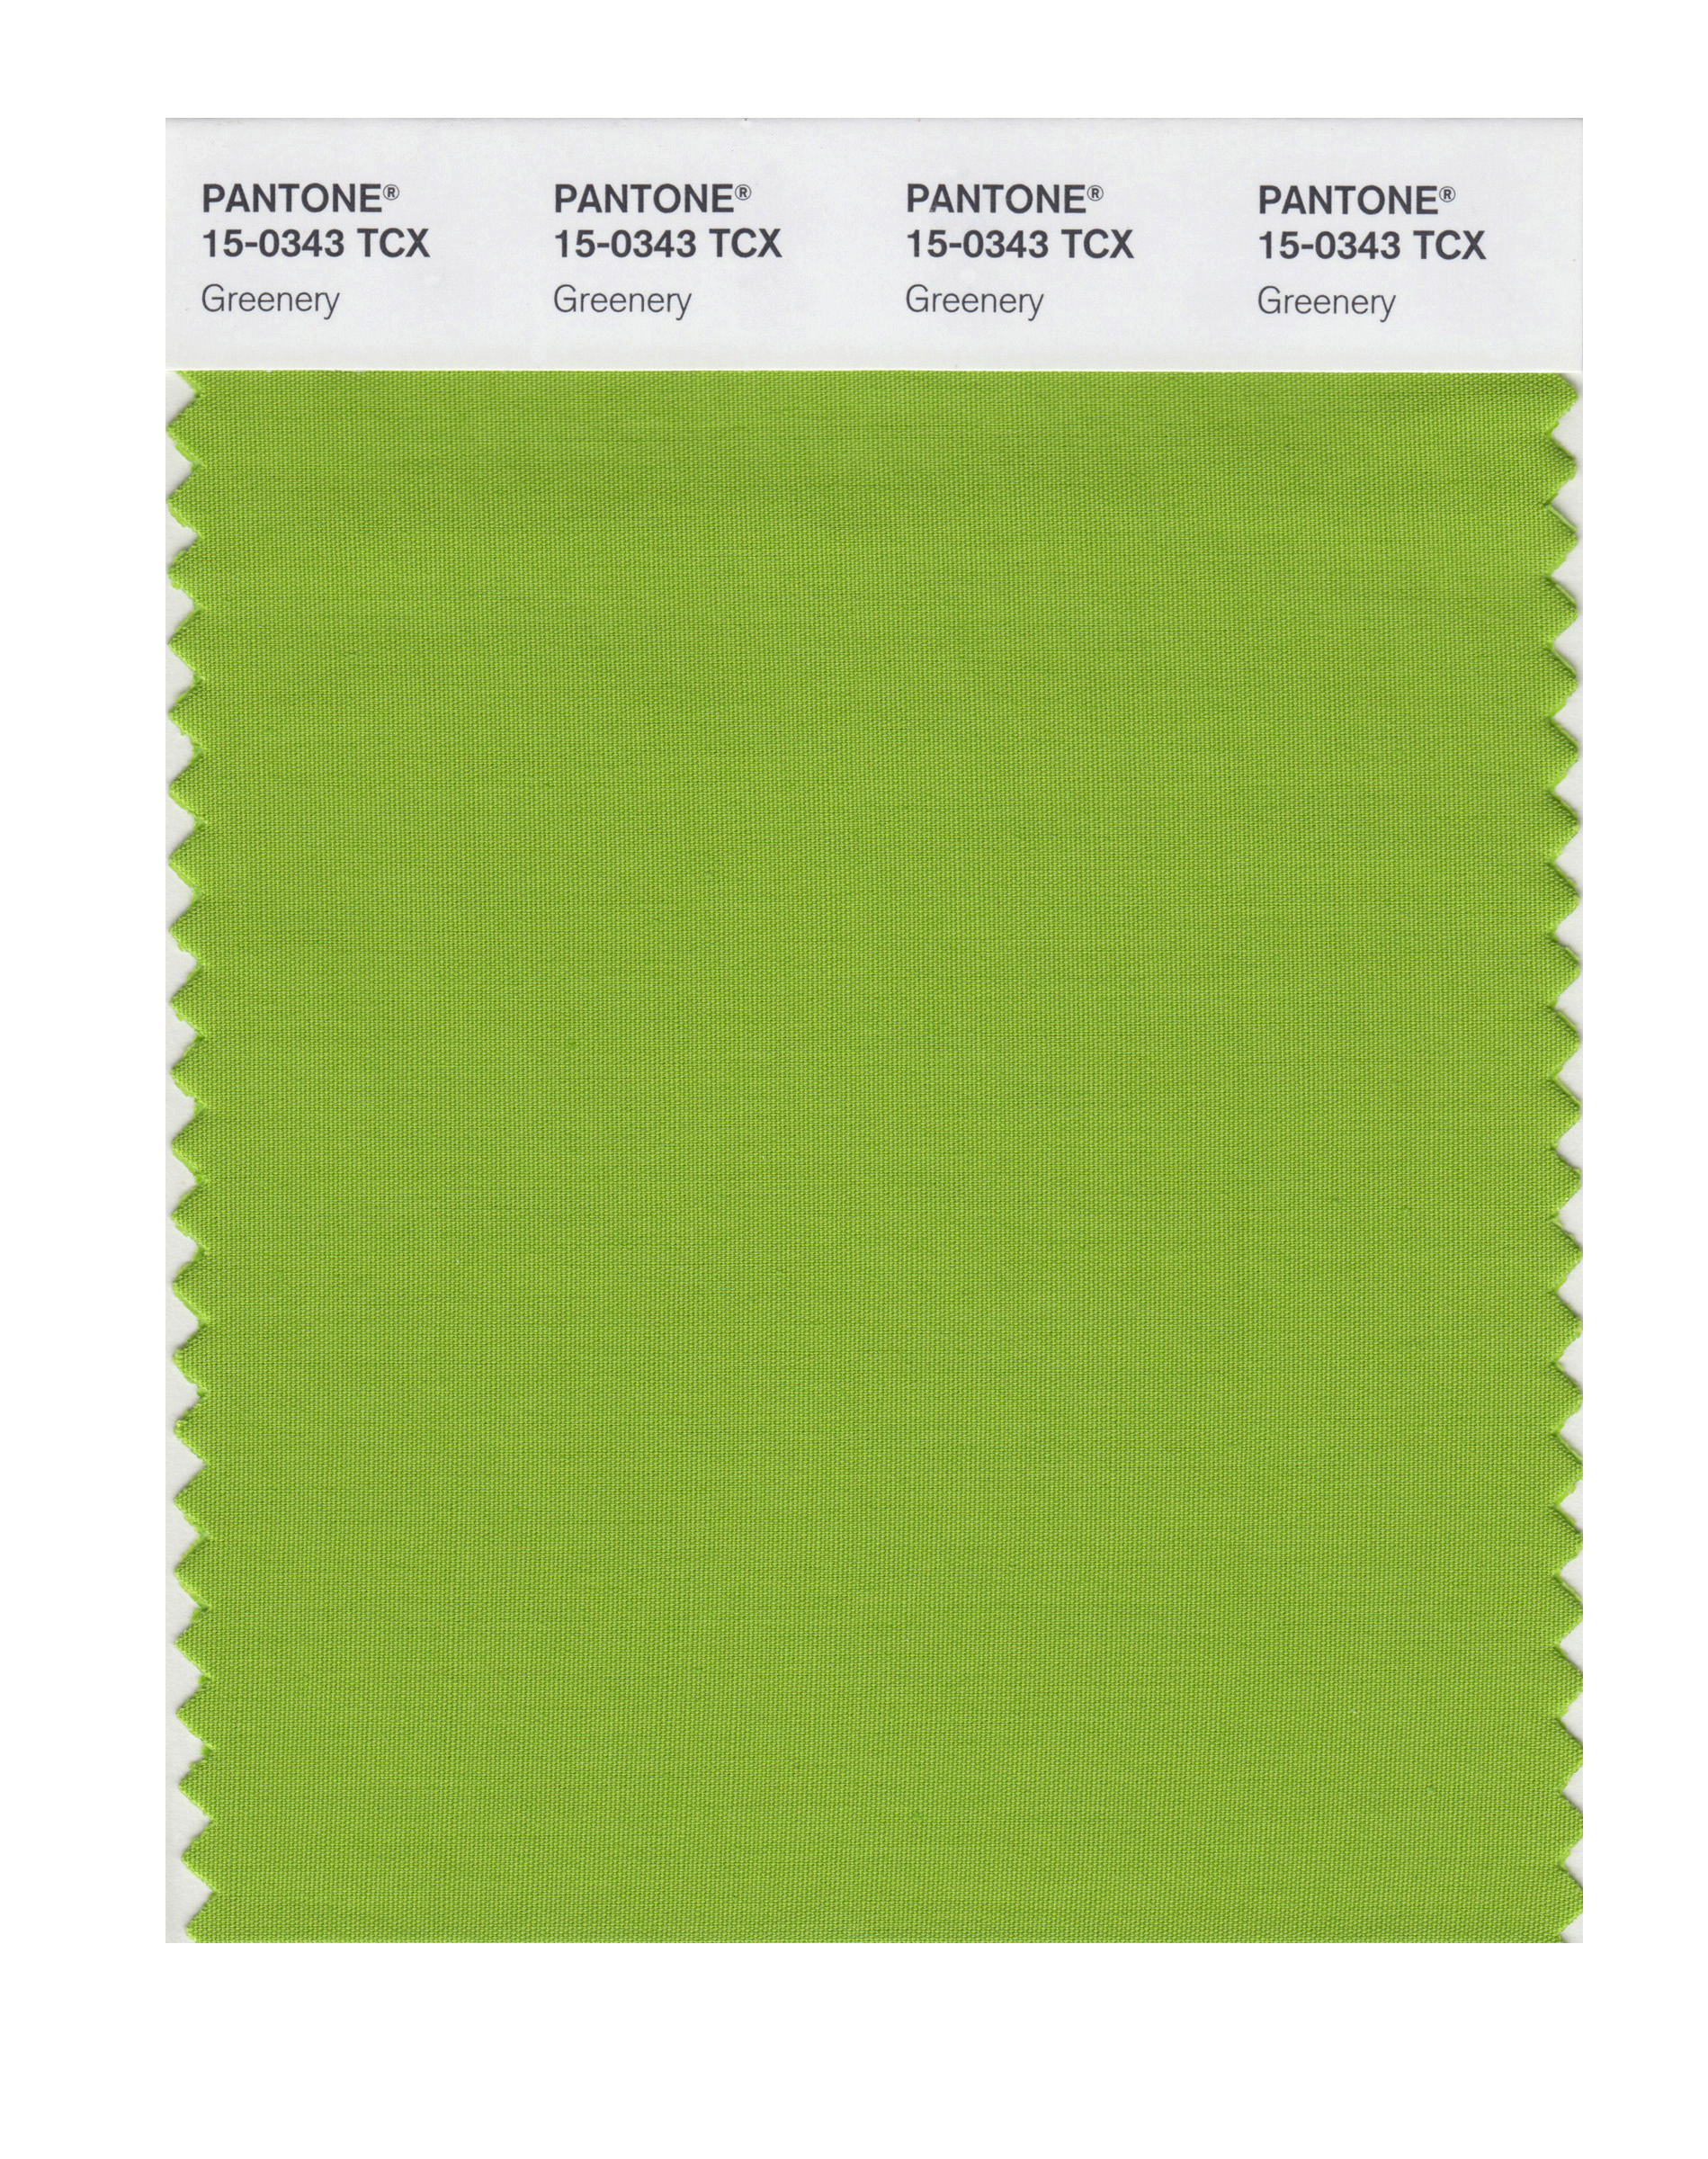 This image released by Pantone shows a color swatch called  greenery , which has been named as the color of the year for 2017 by the Pantone Color Institute.